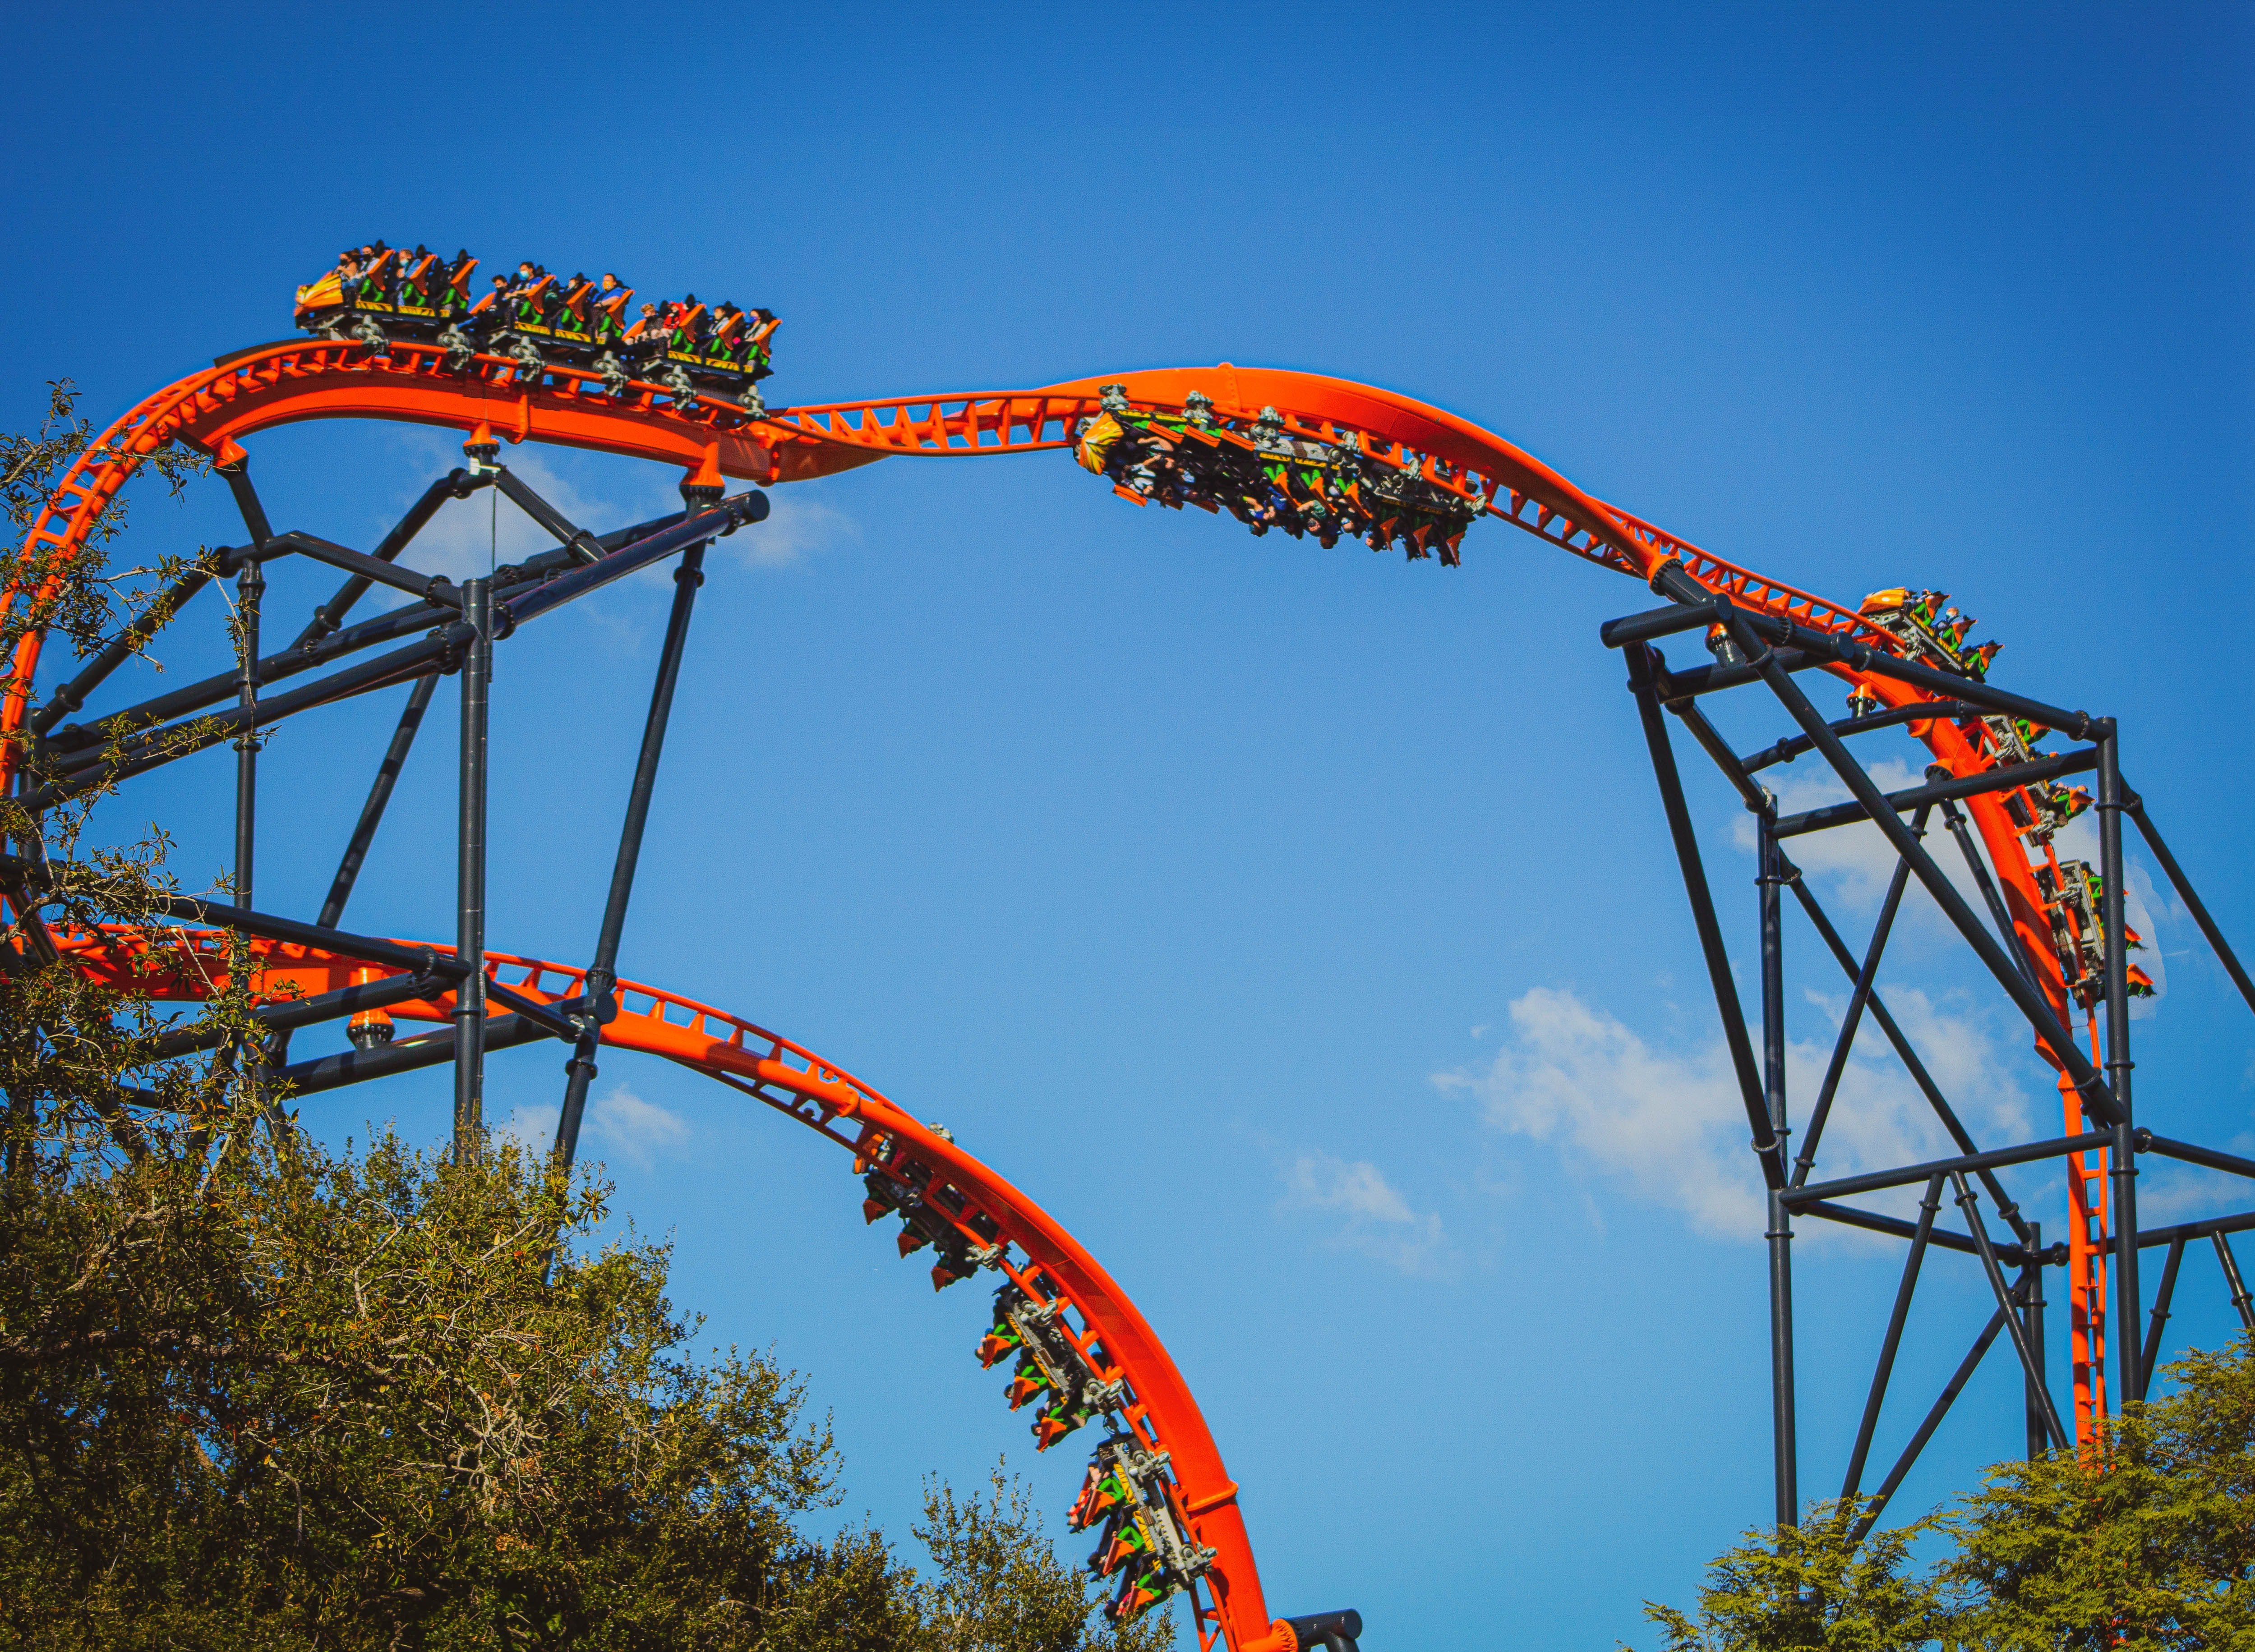 A huge red roller coaster with lots of carts moving round it. Lots of twists and turns.